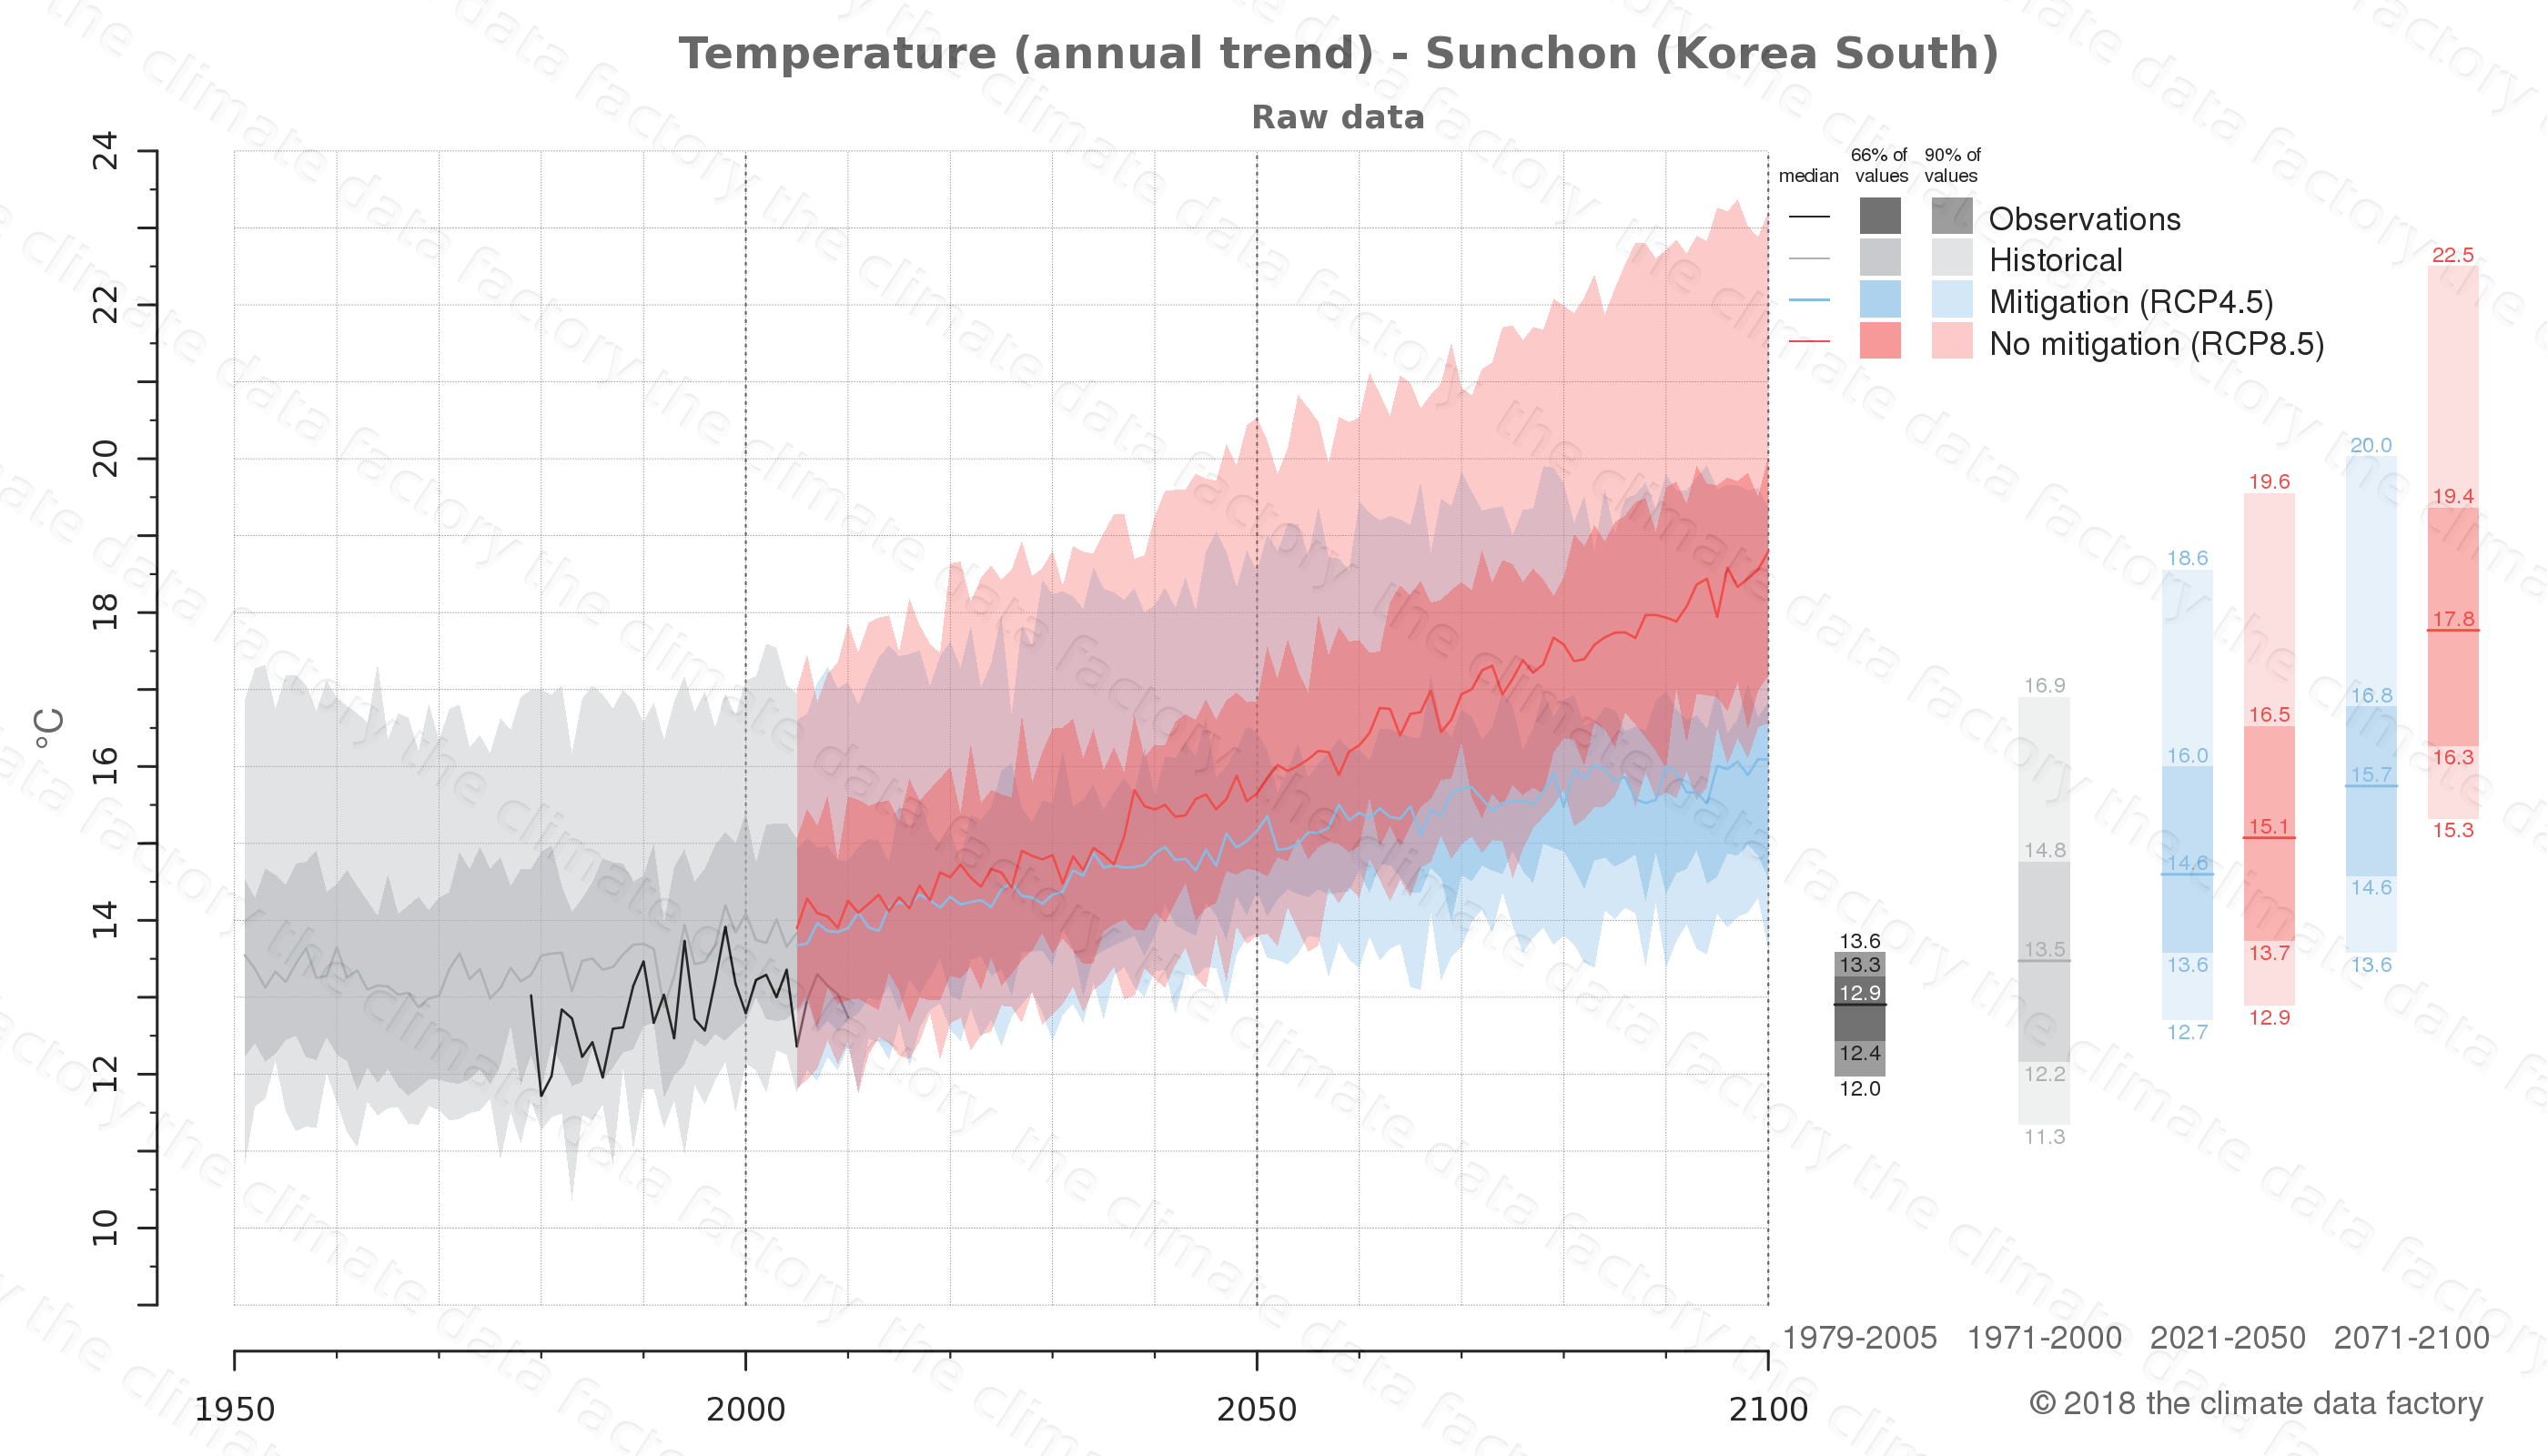 climate change data policy adaptation climate graph city data temperature sunchon south korea